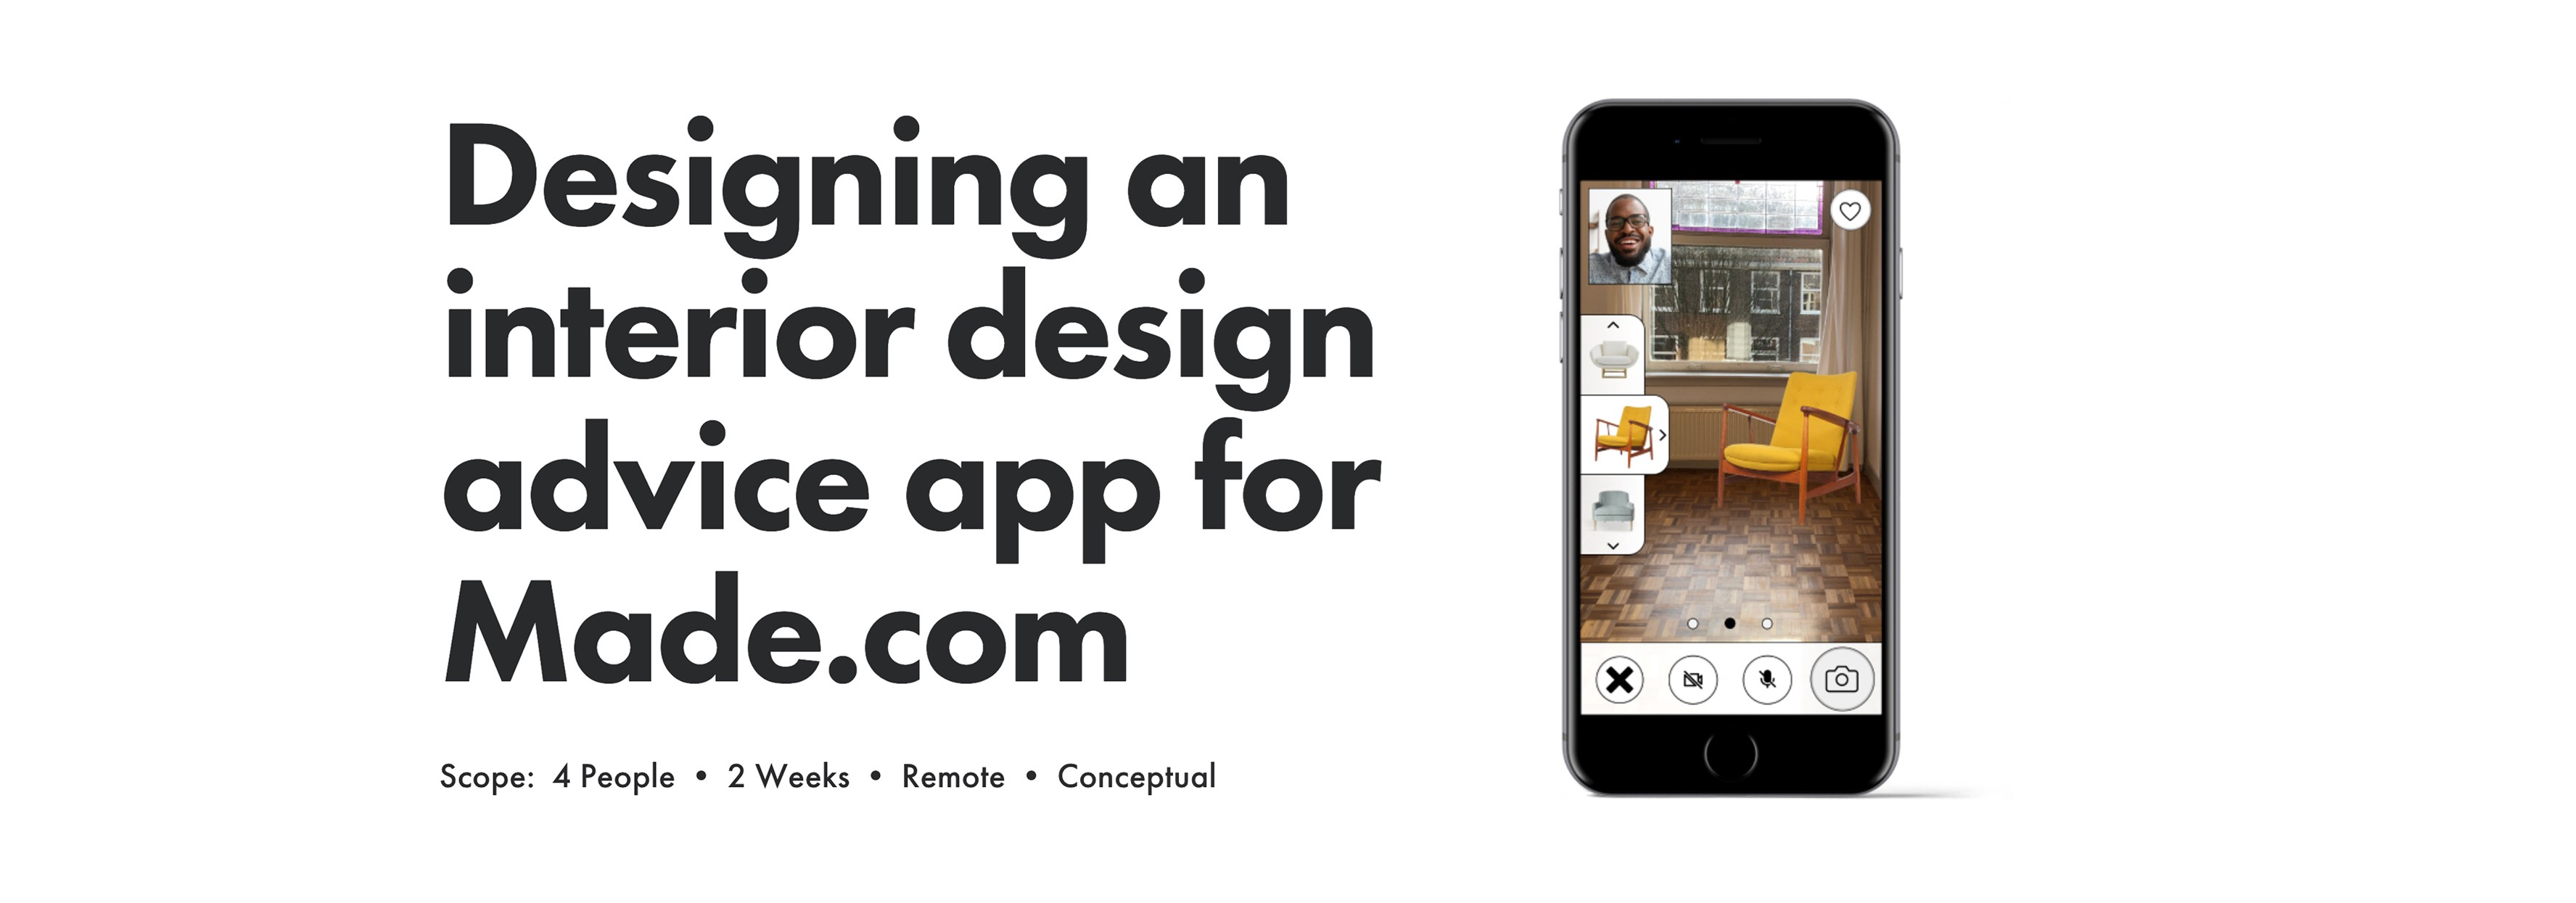 Case Study Designing An Interior Design Advice App For Made Com By Chad Cheverier Apr 2021 Bootcamp